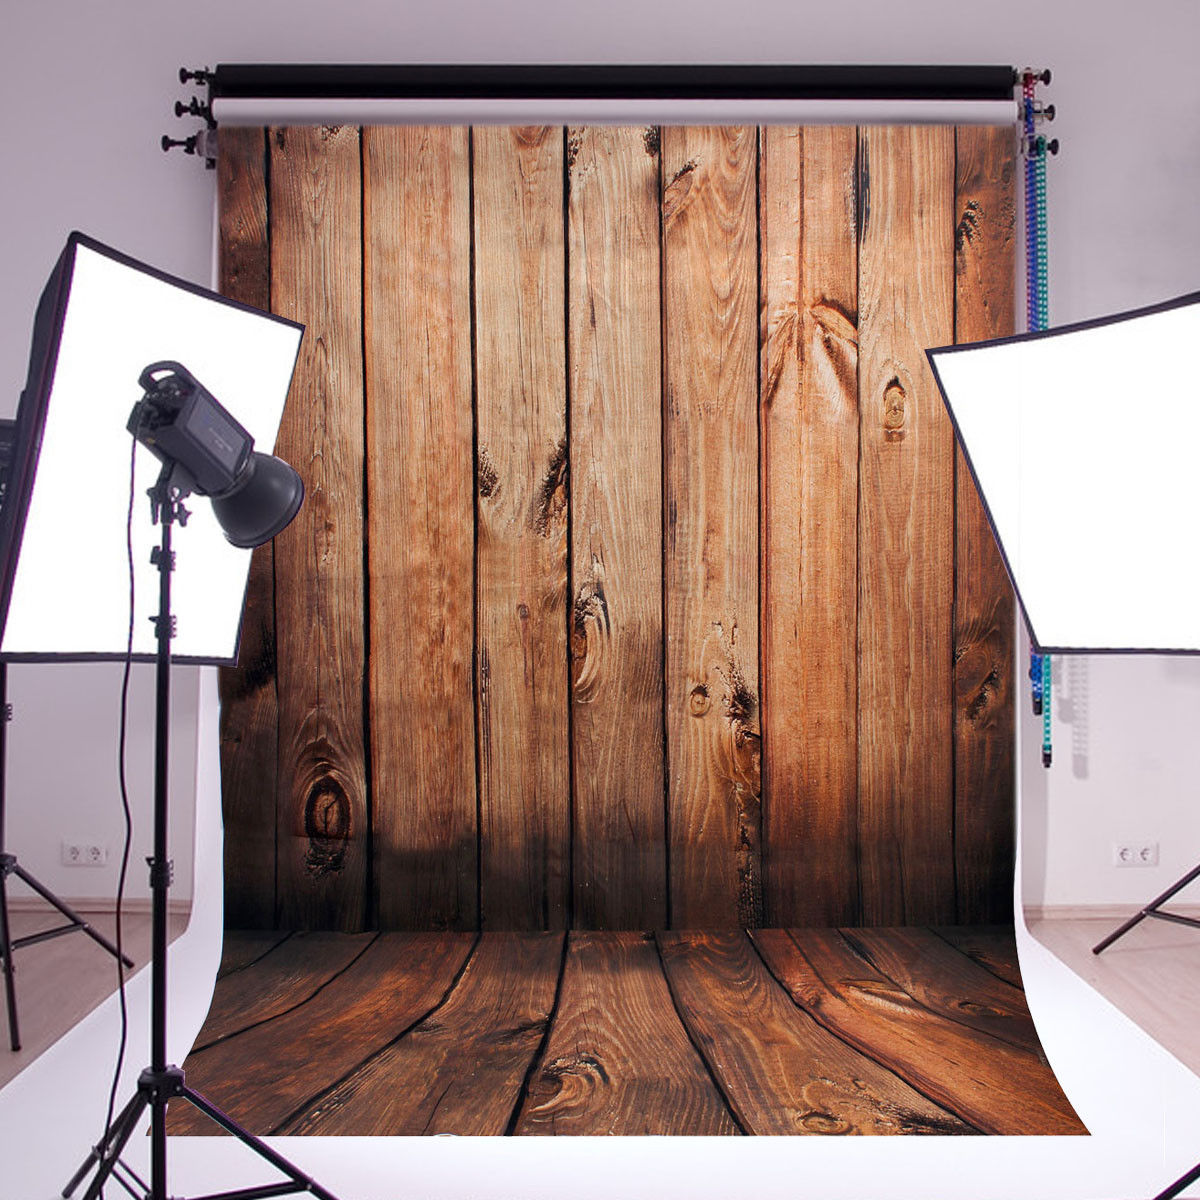 Photography Backdrops vinyl background for photo studio vintage wood baby background 2.1*1.5m Hot Sale 300cm 300cm vinyl custom photography backdrops prop digital photo studio background s 4748